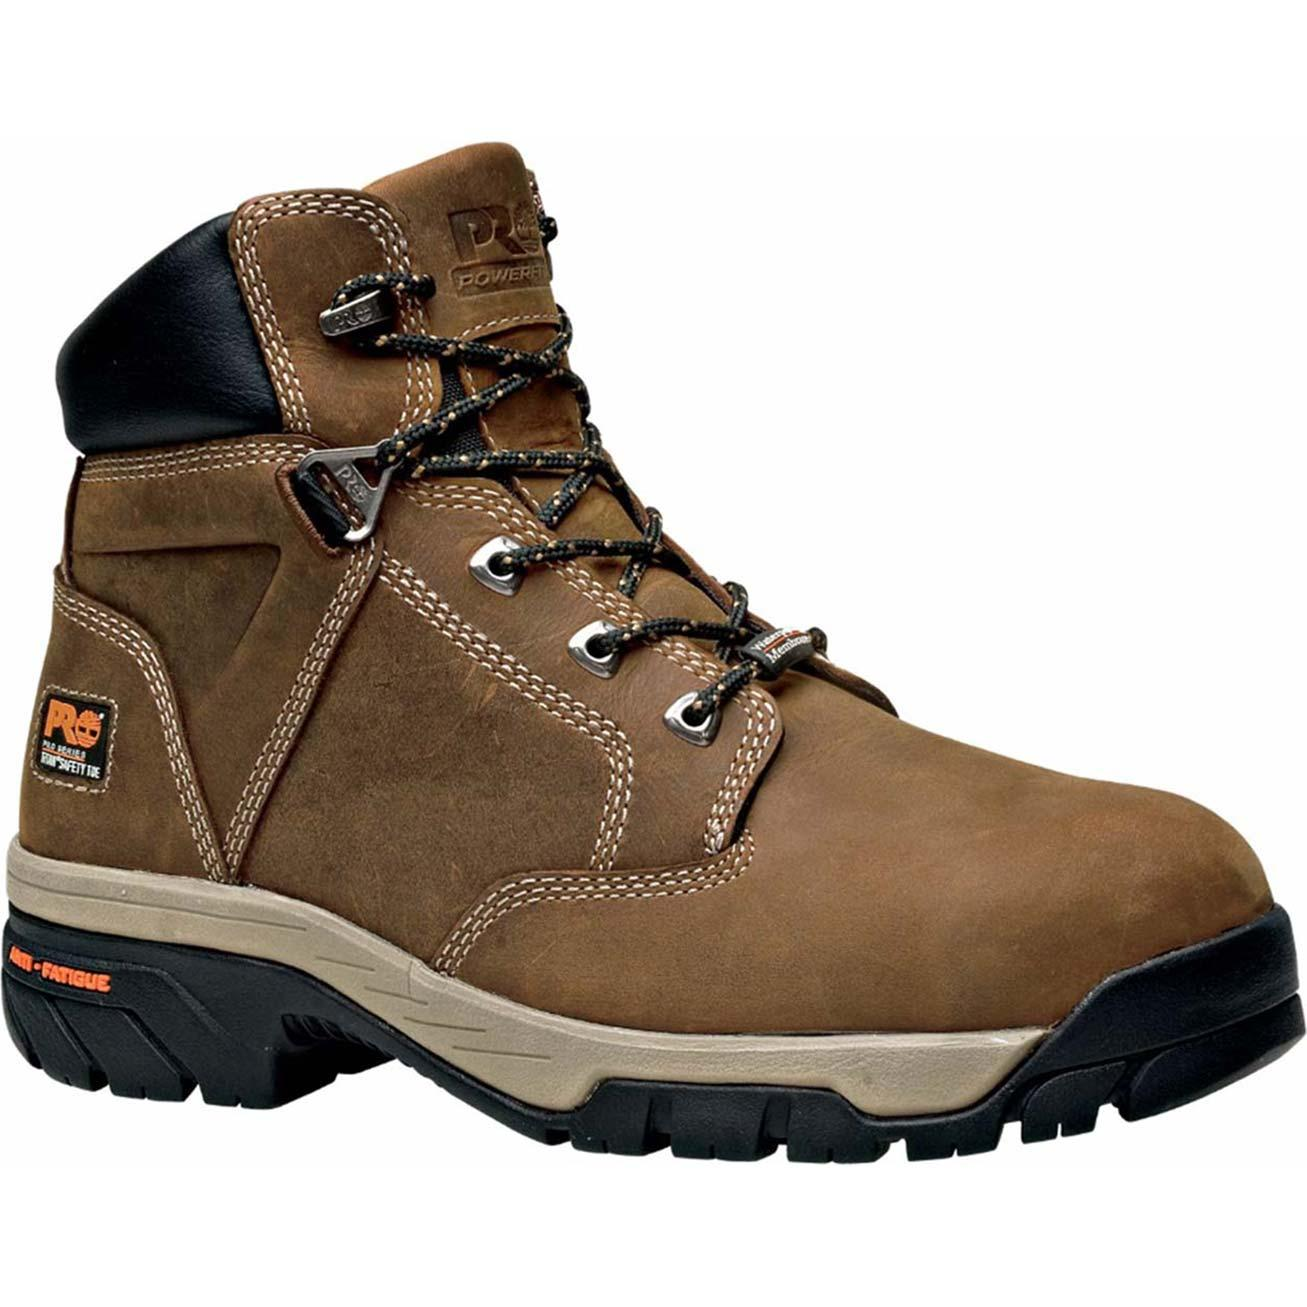 Timberland PRO Helix 6 Inch Waterproof Alloy Toe Work Boots